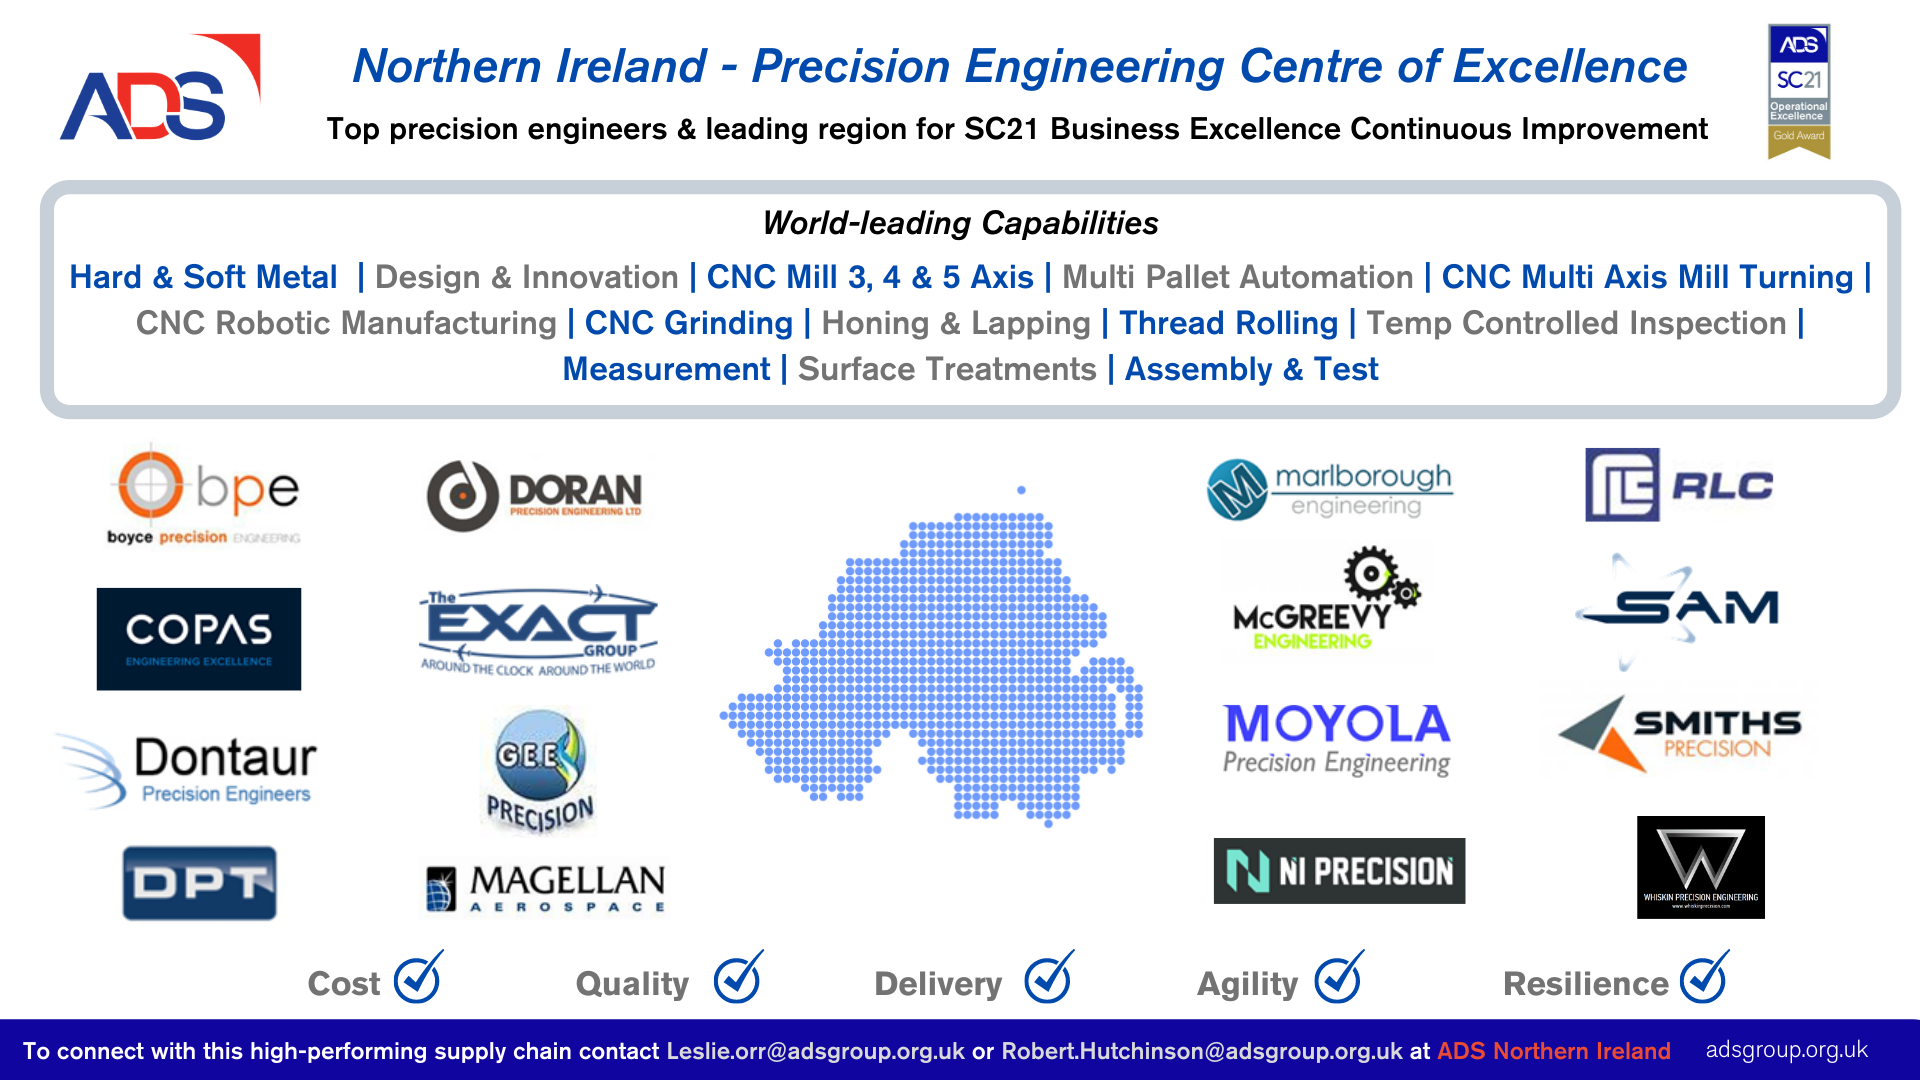 ADS Northern Ireland - Precision Engineering Centre of Excellence